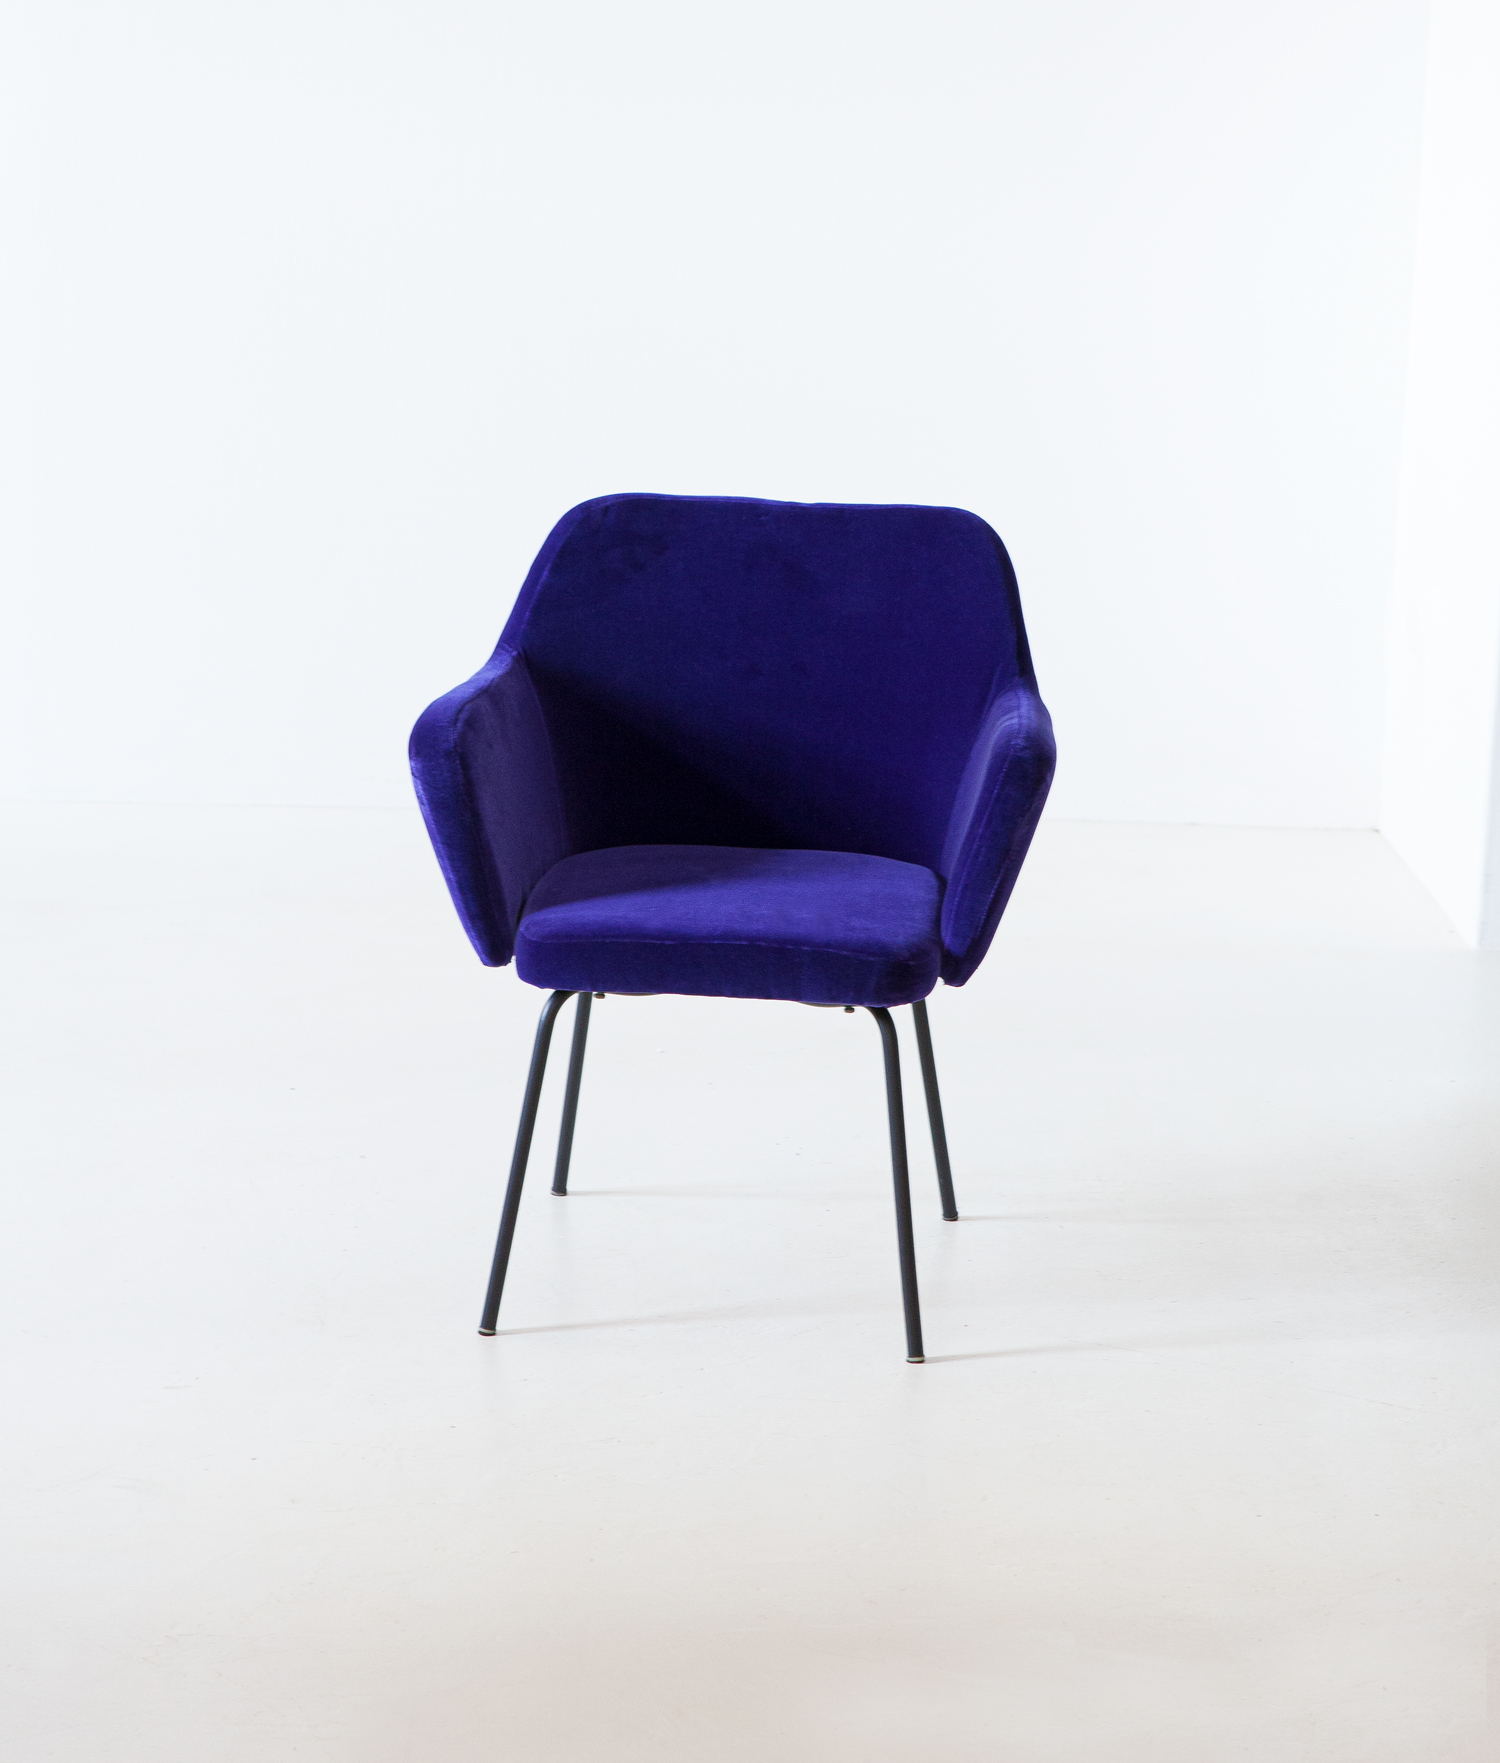 1950s-purle-velvet-armchair-by-studio-pfr-for--arflex-1-se318